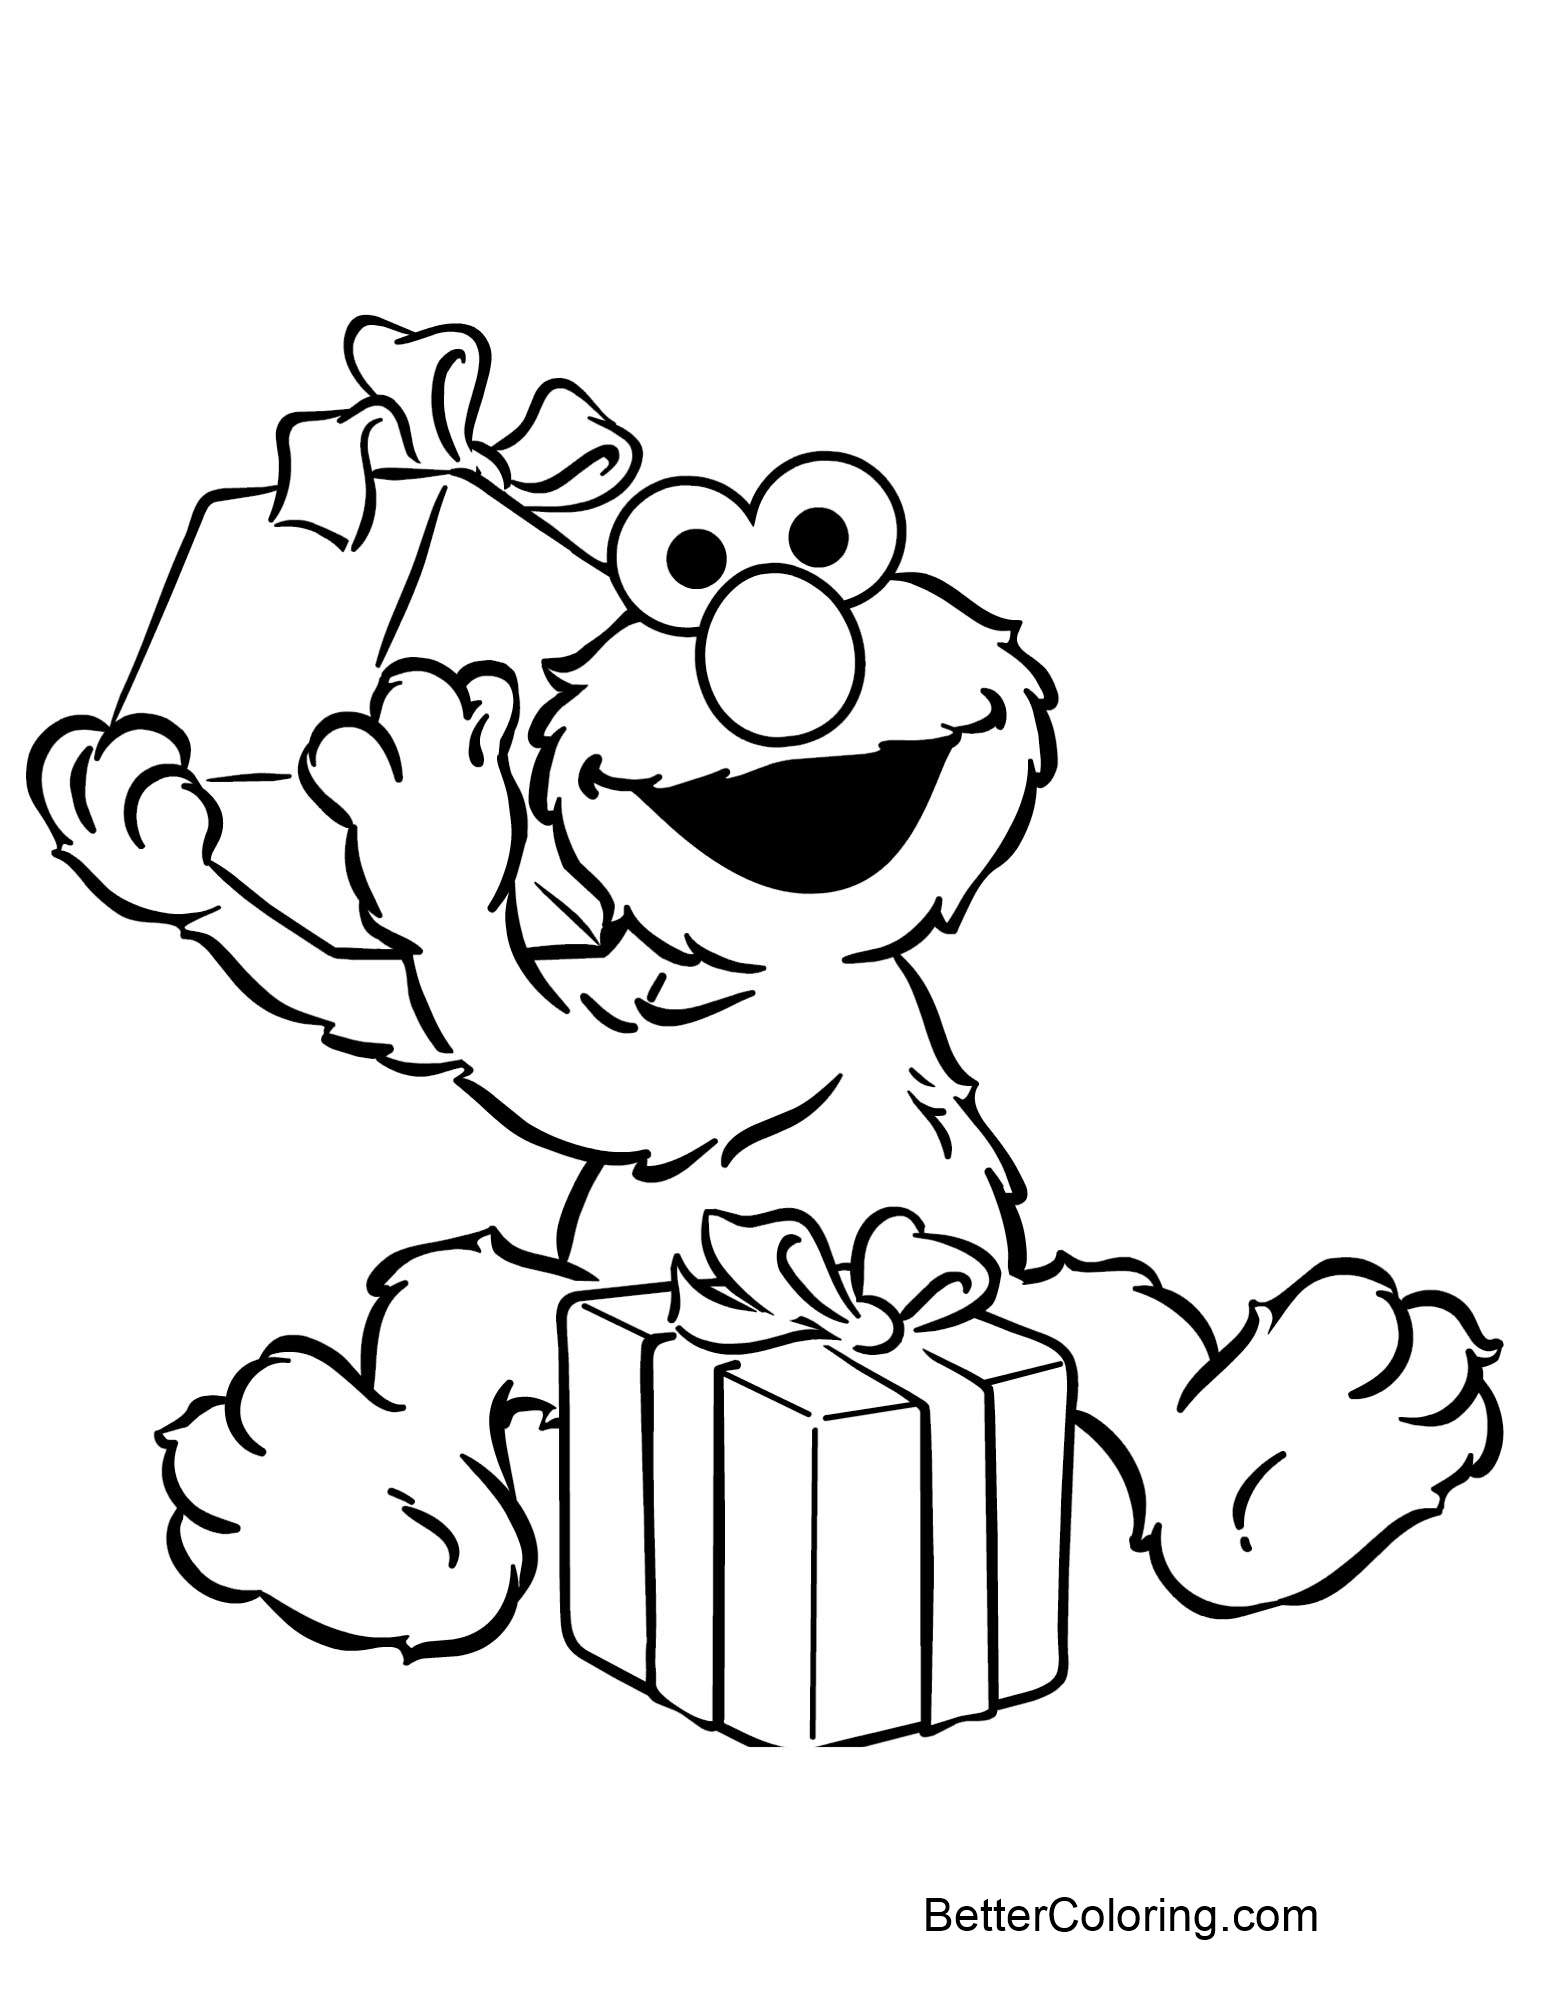 Elmo Coloring Pages Open Gift Box - Free Printable Coloring Pages